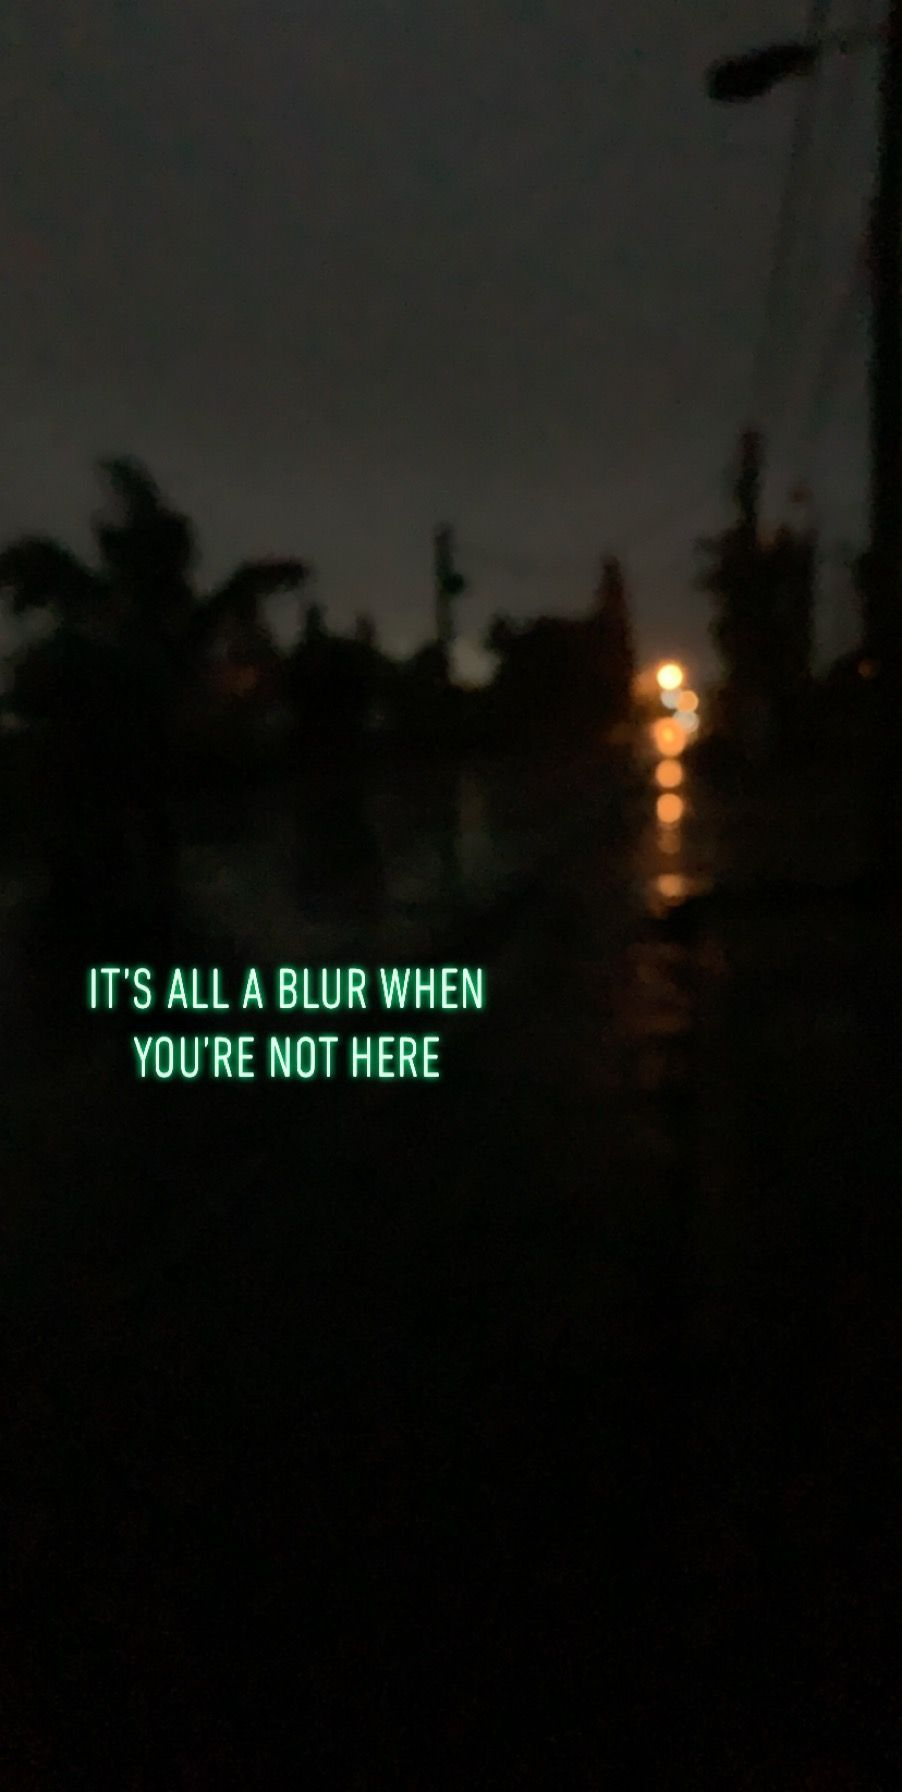 Collection 37 Blur Quotes 2 And Sayings With Images Blur Quotes Quotes About Photography Life Captions